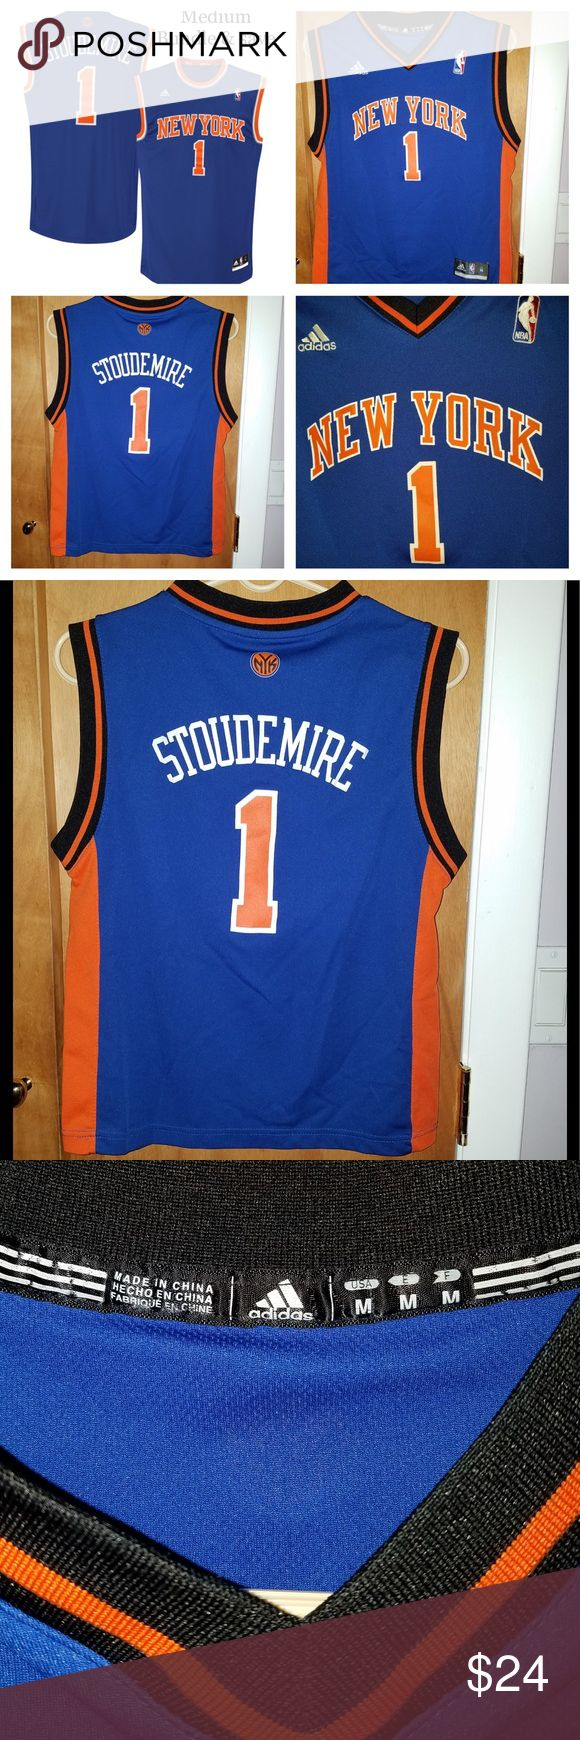 NY Knicks Jersey (Stoudemire) Material: 100% Polyester Dazzle and mesh jersey Screen print name, numbers and logos Embroidered NBA & adidas logos Rib-knit collar and arm holes Back neck taping – no irritating stitch on the back neck Jock tag Machine wash adidas Shirts & Tops